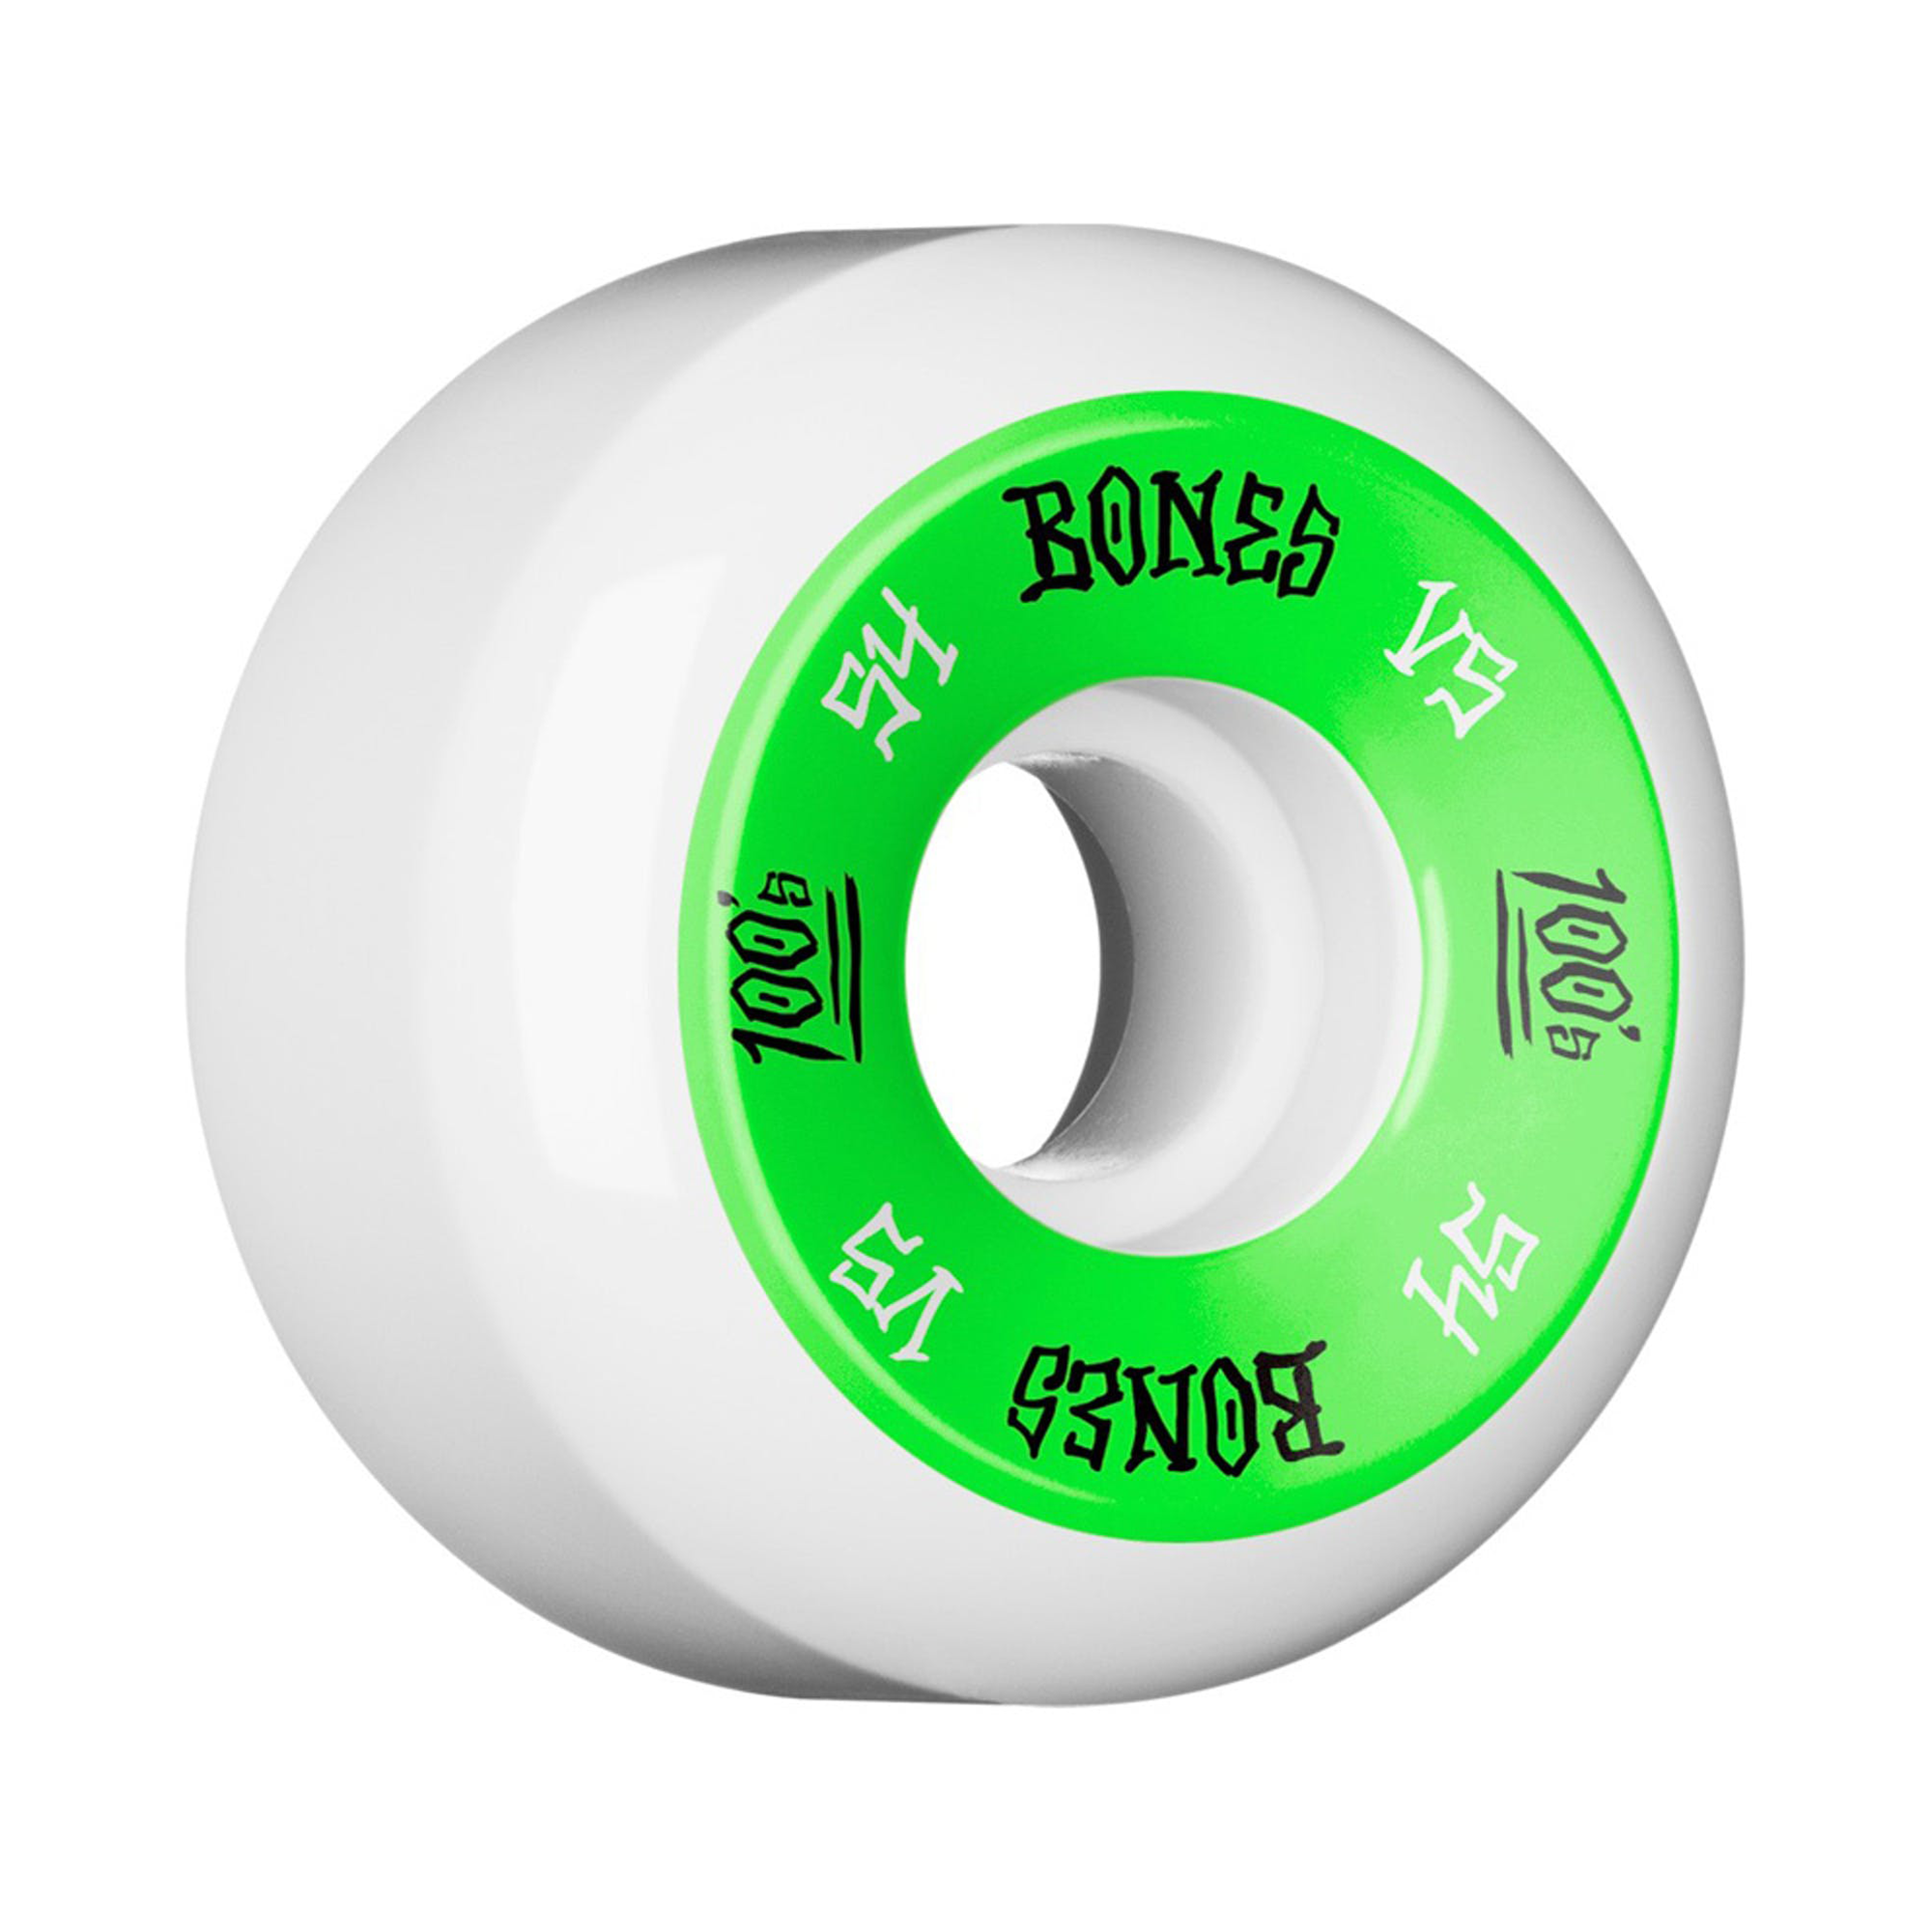 Bones 100s V5 Wheels Product Photo #1